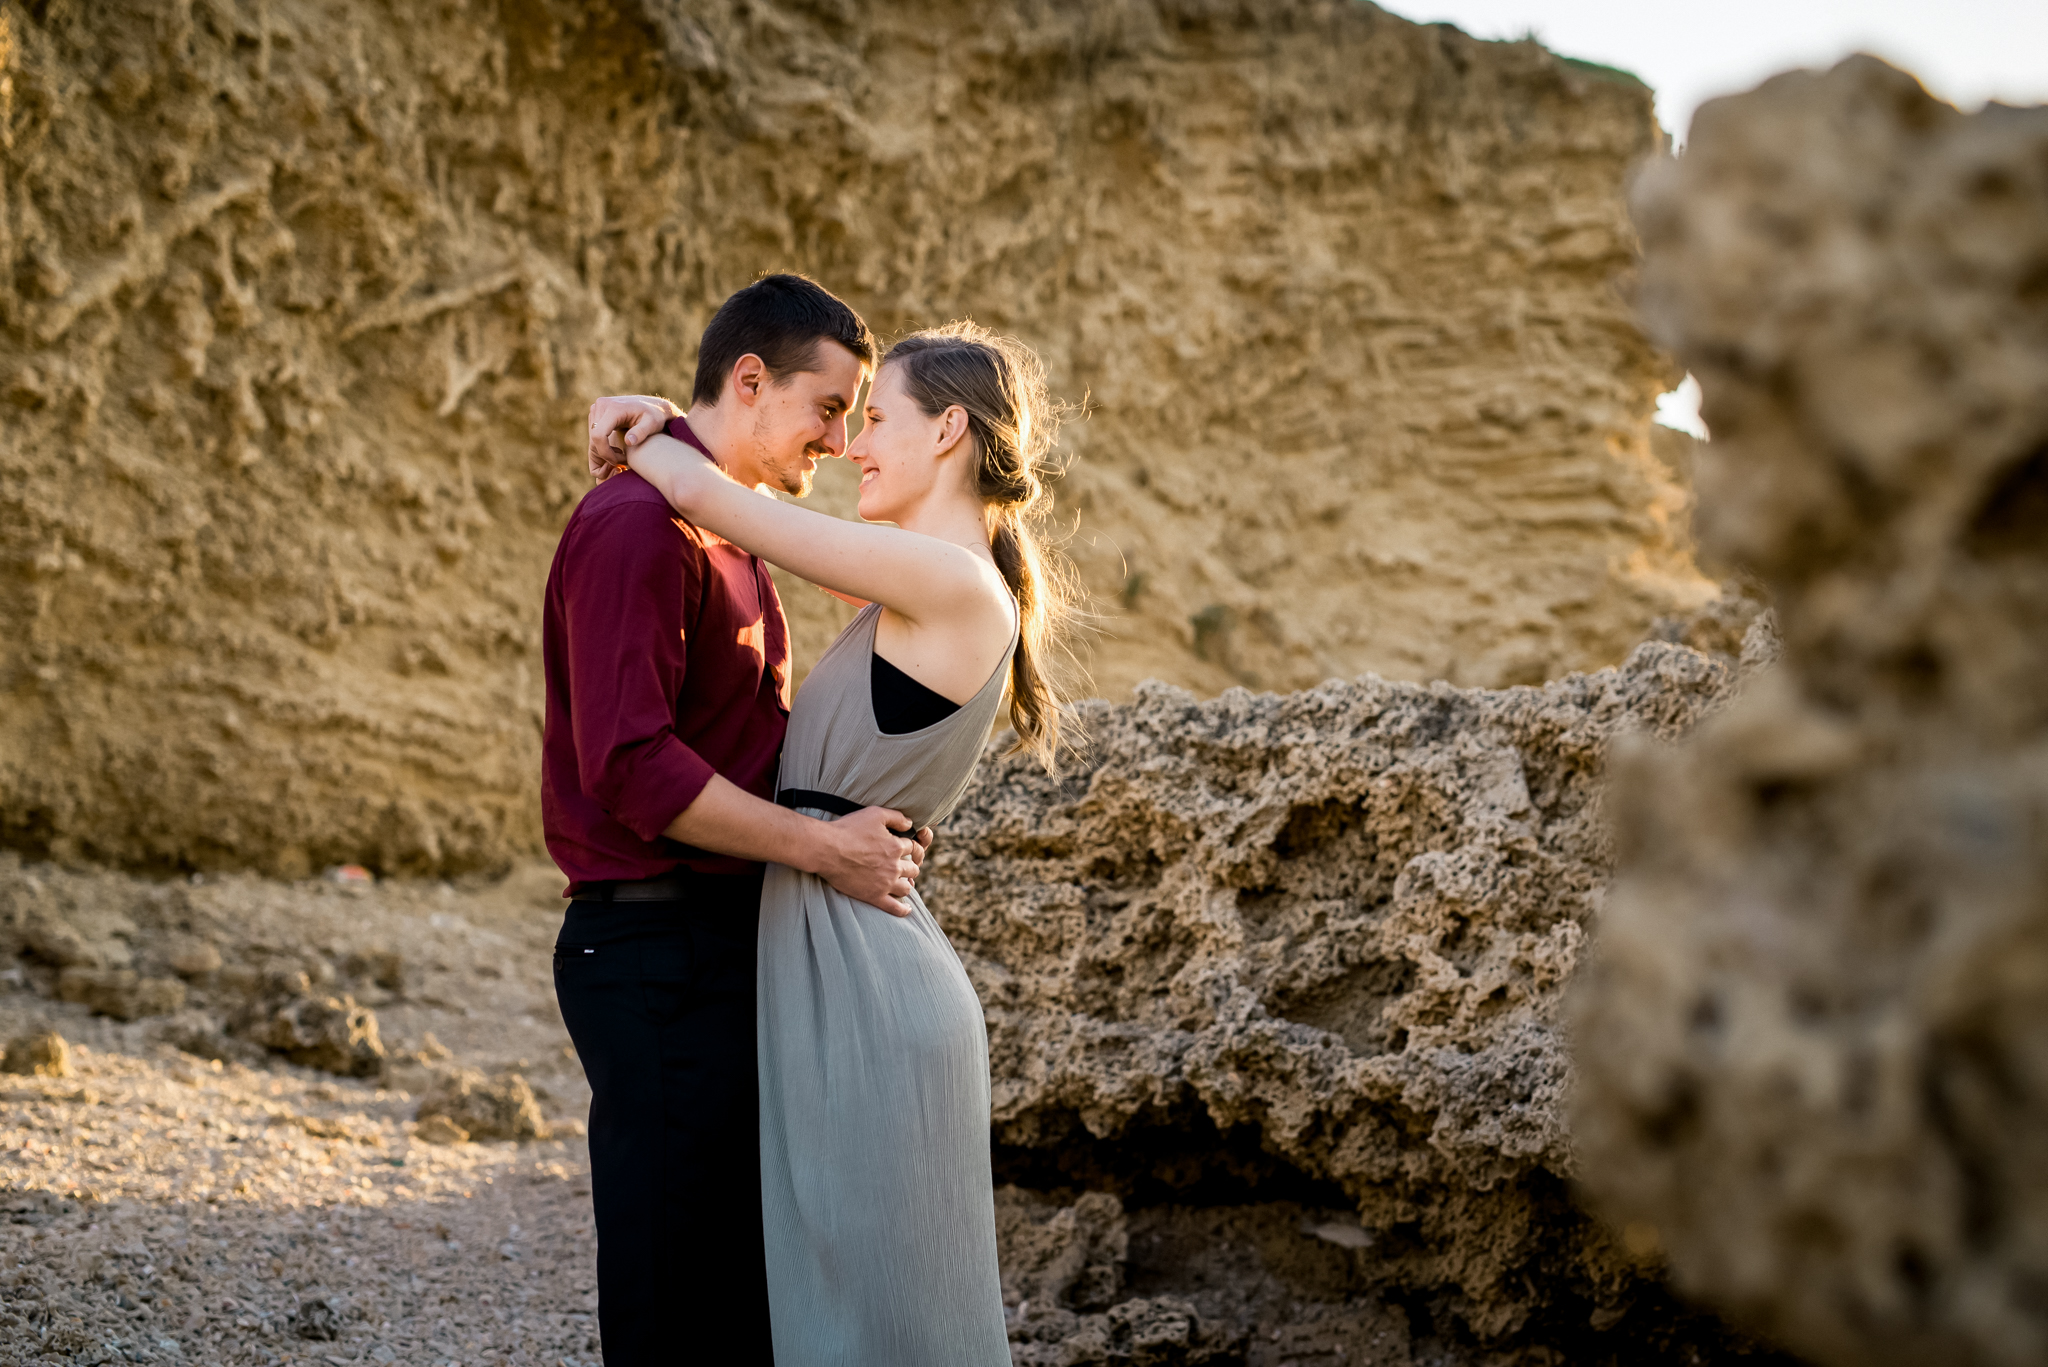 Cliffside-beach-engagement-session-hadera-israel-kate-giryes-photography-9295.jpg